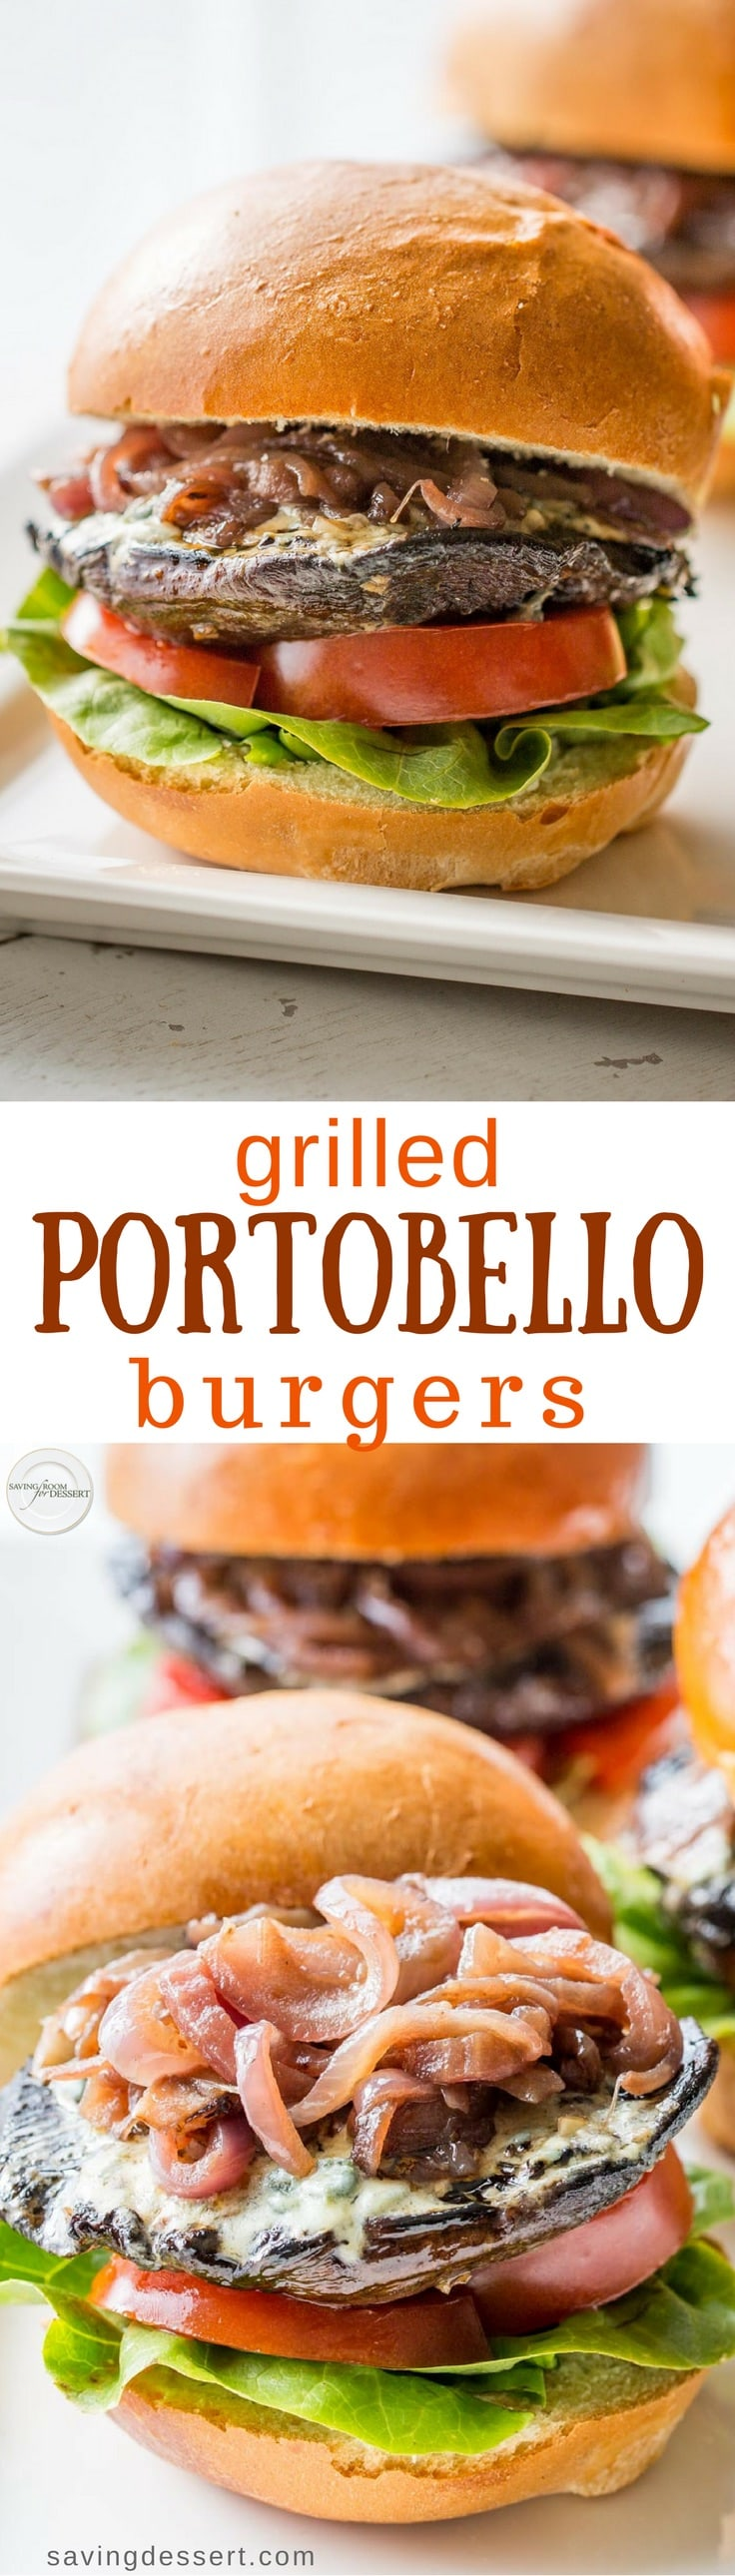 Grilled Portobello Burgers with Blue Cheese and Onions - a terrific meatless Monday meal that's inexpensive, quick, easy and will make the burger loving people in your family very happy! #savingroomfordessert #burger #meatlessmonday #portobelloburger #mushroomburger #grilledmushrooms